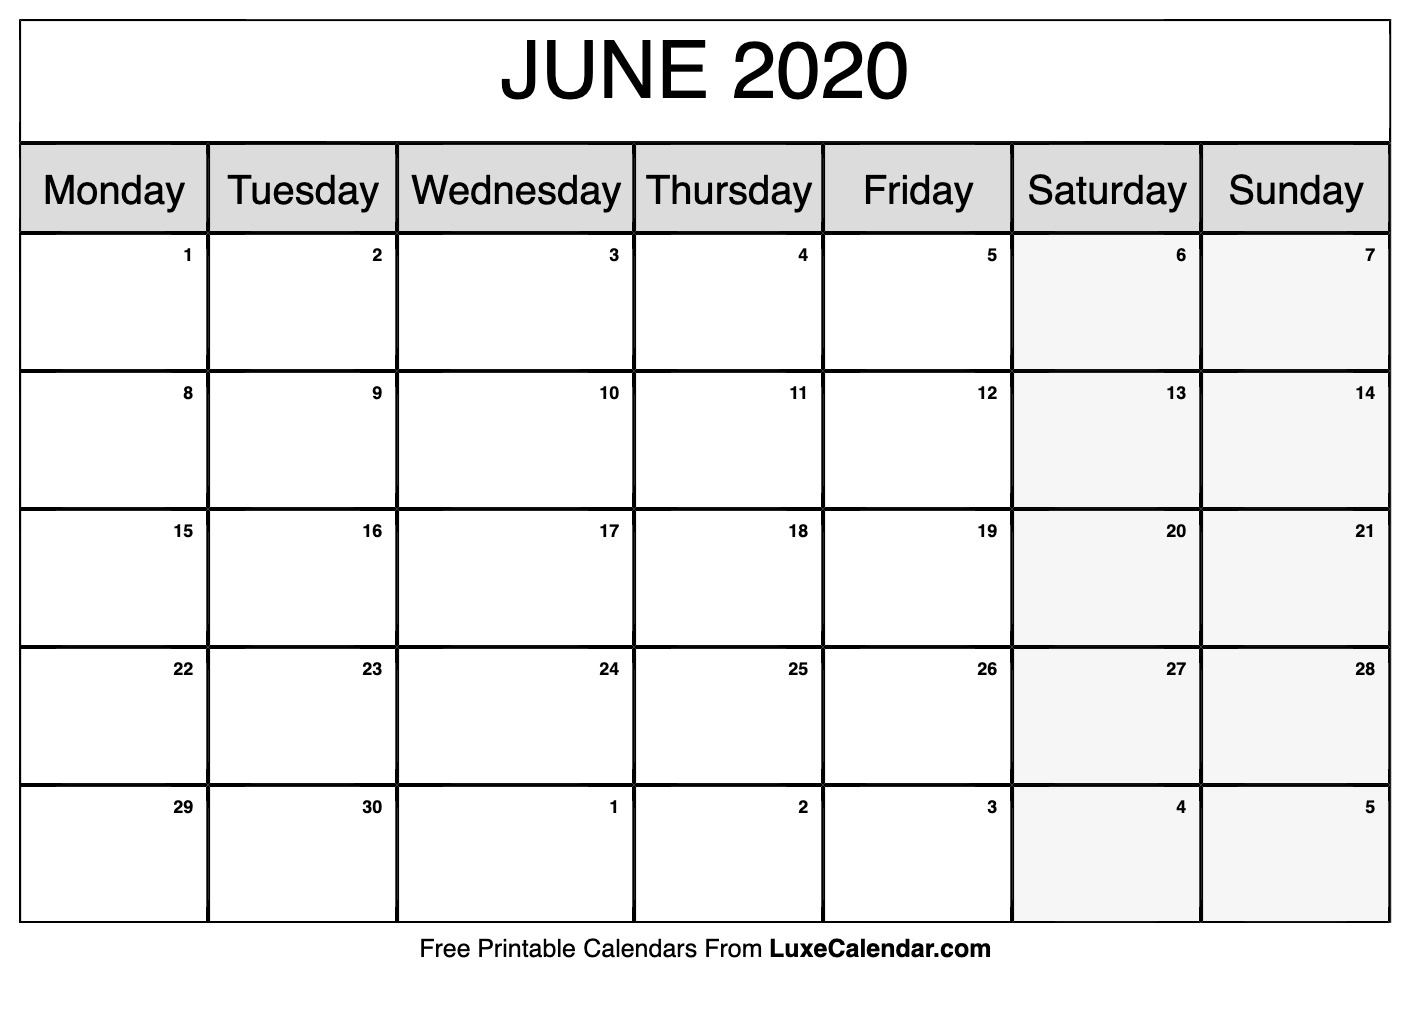 Blank June 2020 Calendar Printable - Luxe Calendar regarding 2020 Monday - Friday Calendar Printable